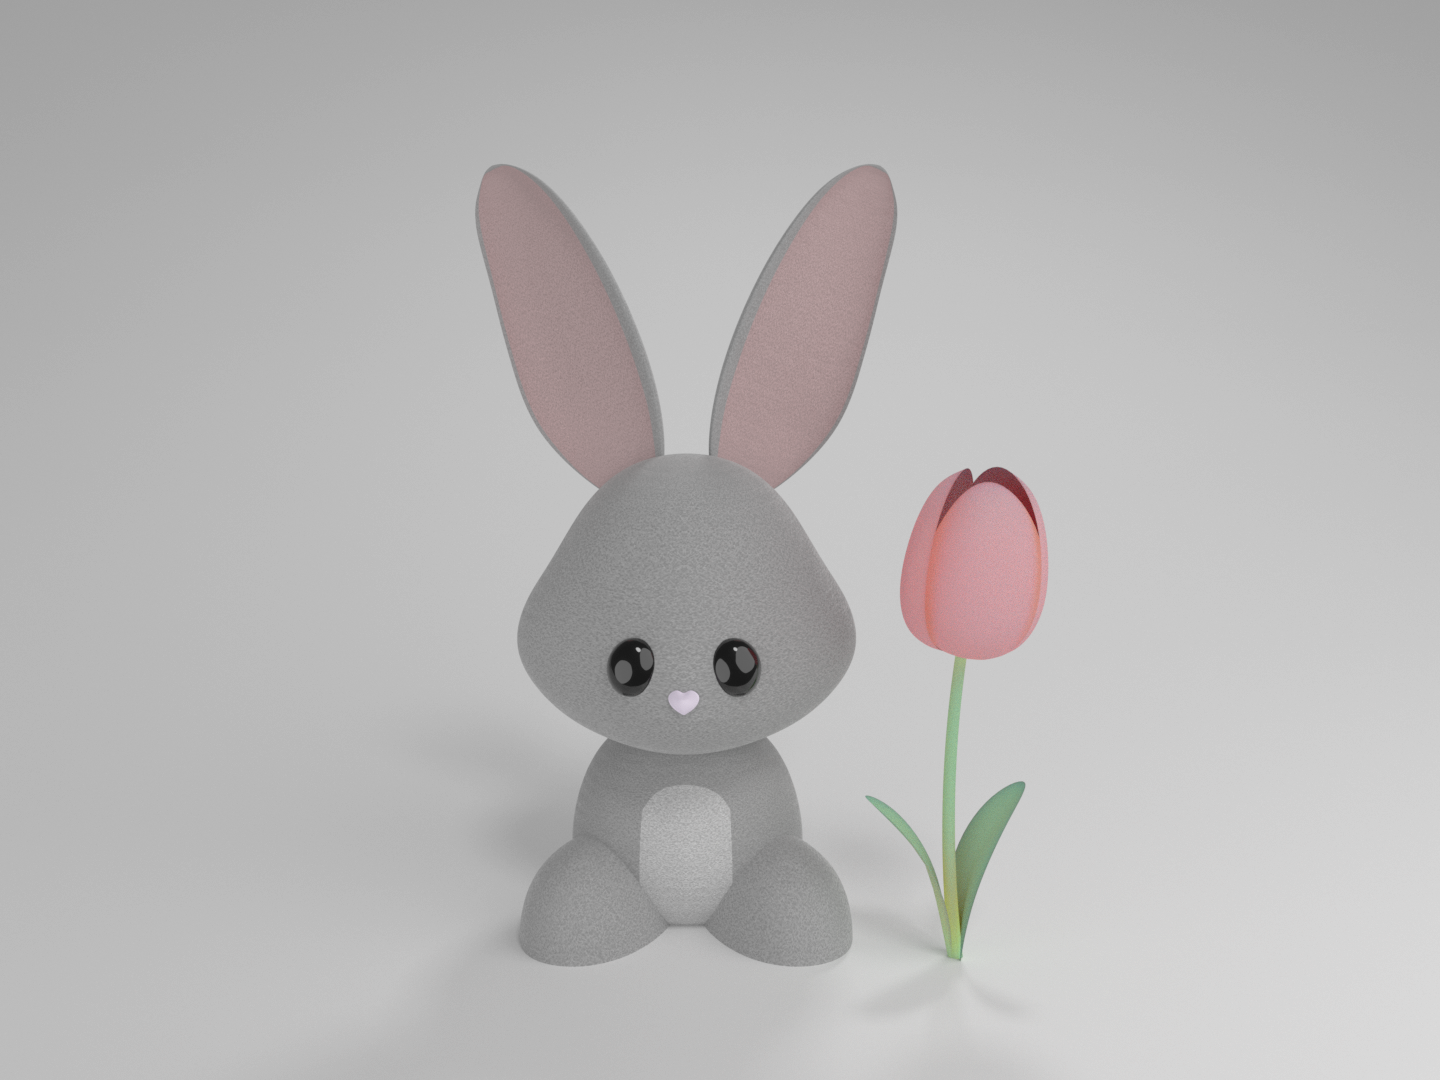 These tulips are for no bunny but you easter bunny easter spring character illustration blender cgi cute adorable modeling 3d character design tulips rabbit bunny